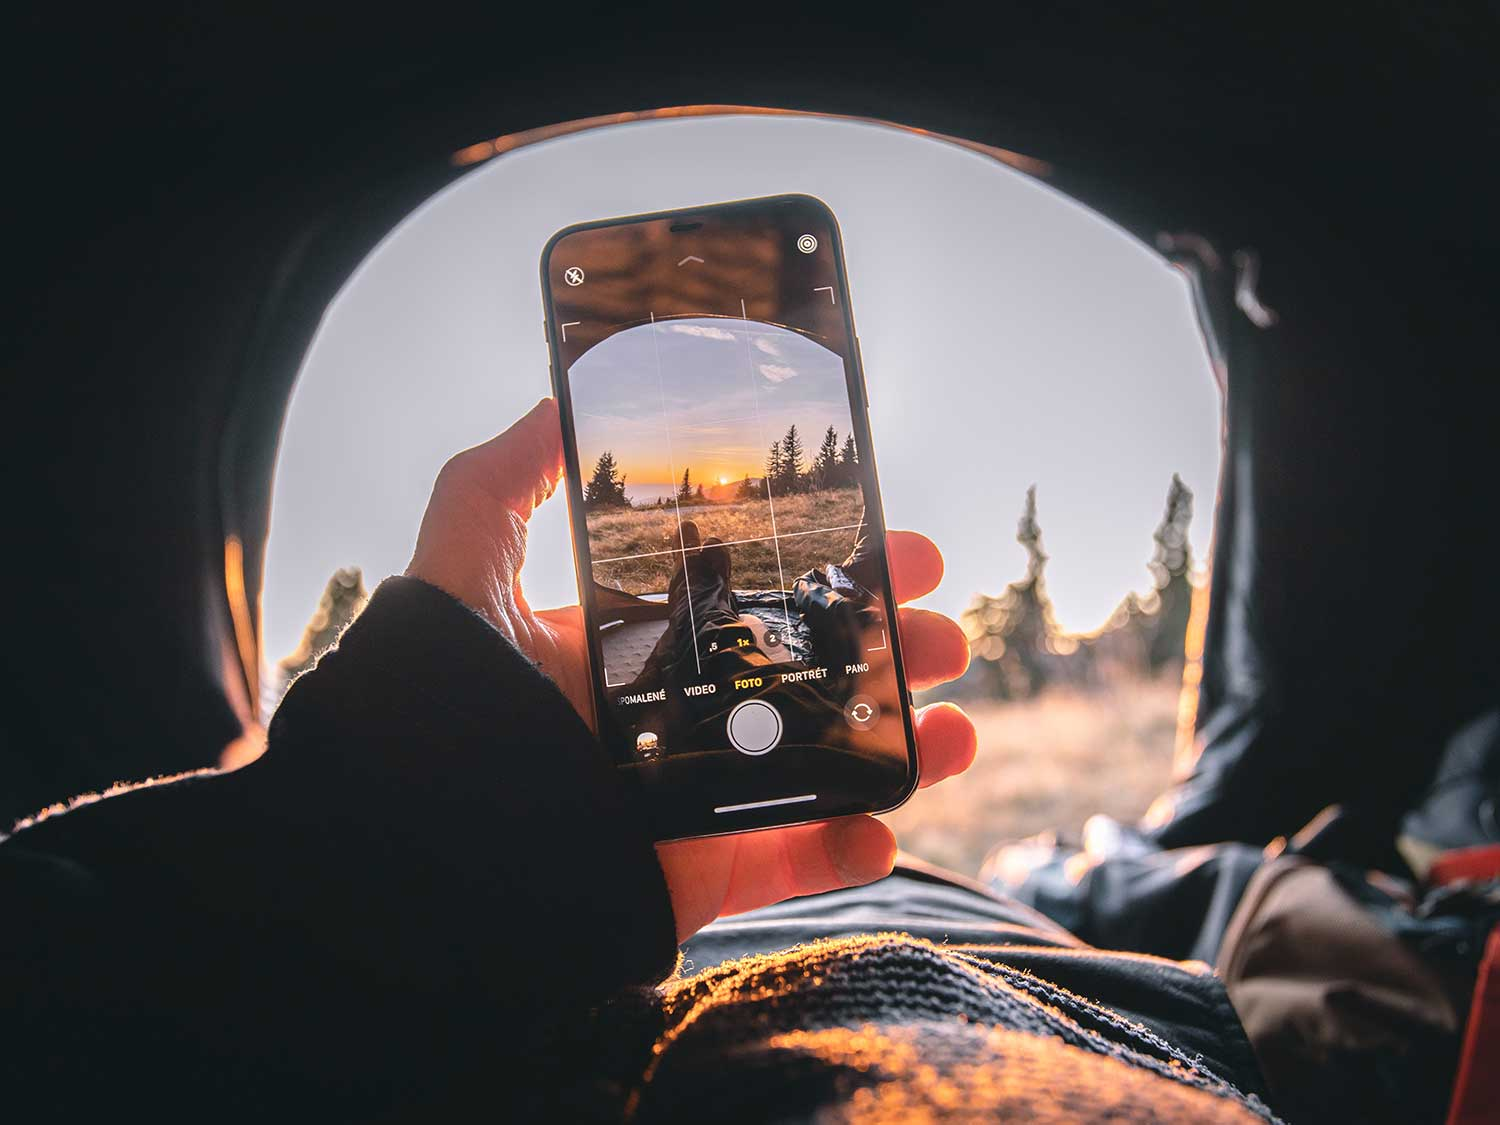 A person takes a picture with their smartphone.